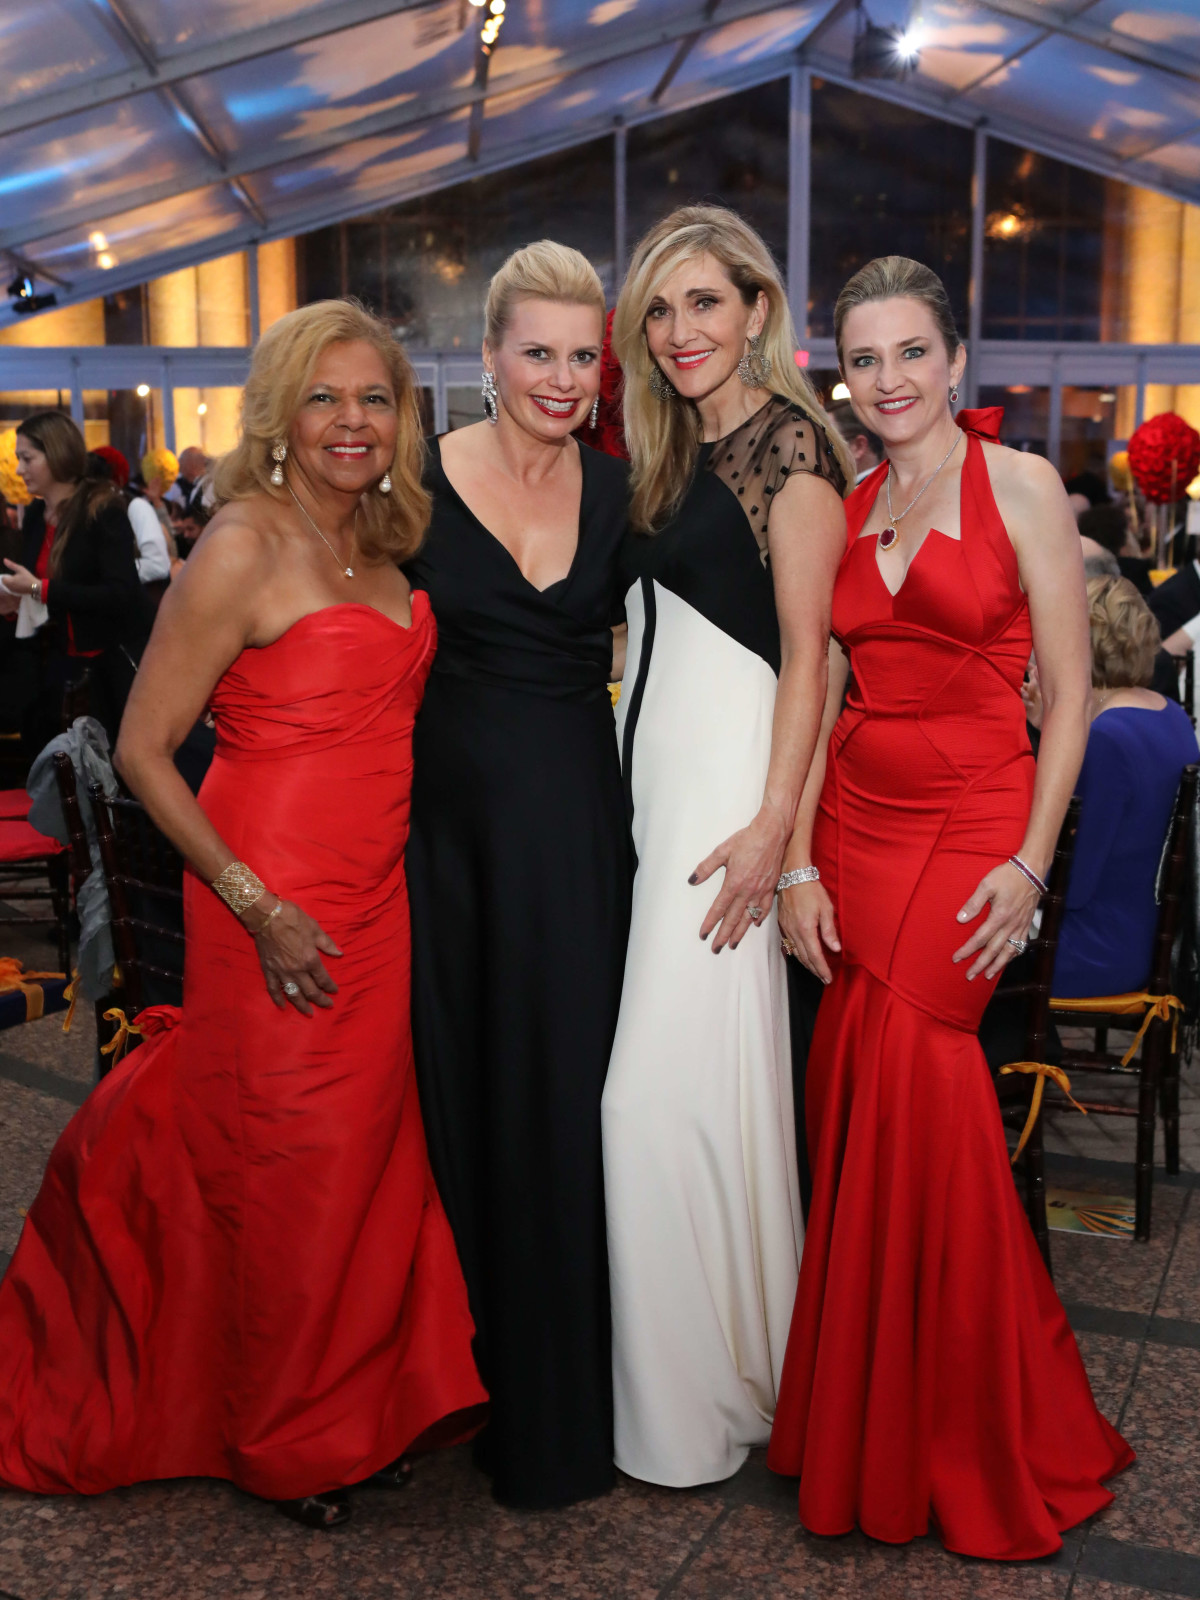 Yvonne Cormier, Valerie Dieterich, Jana Arnoldy, Mary D'Andrea at Houston Grand Opera opening night